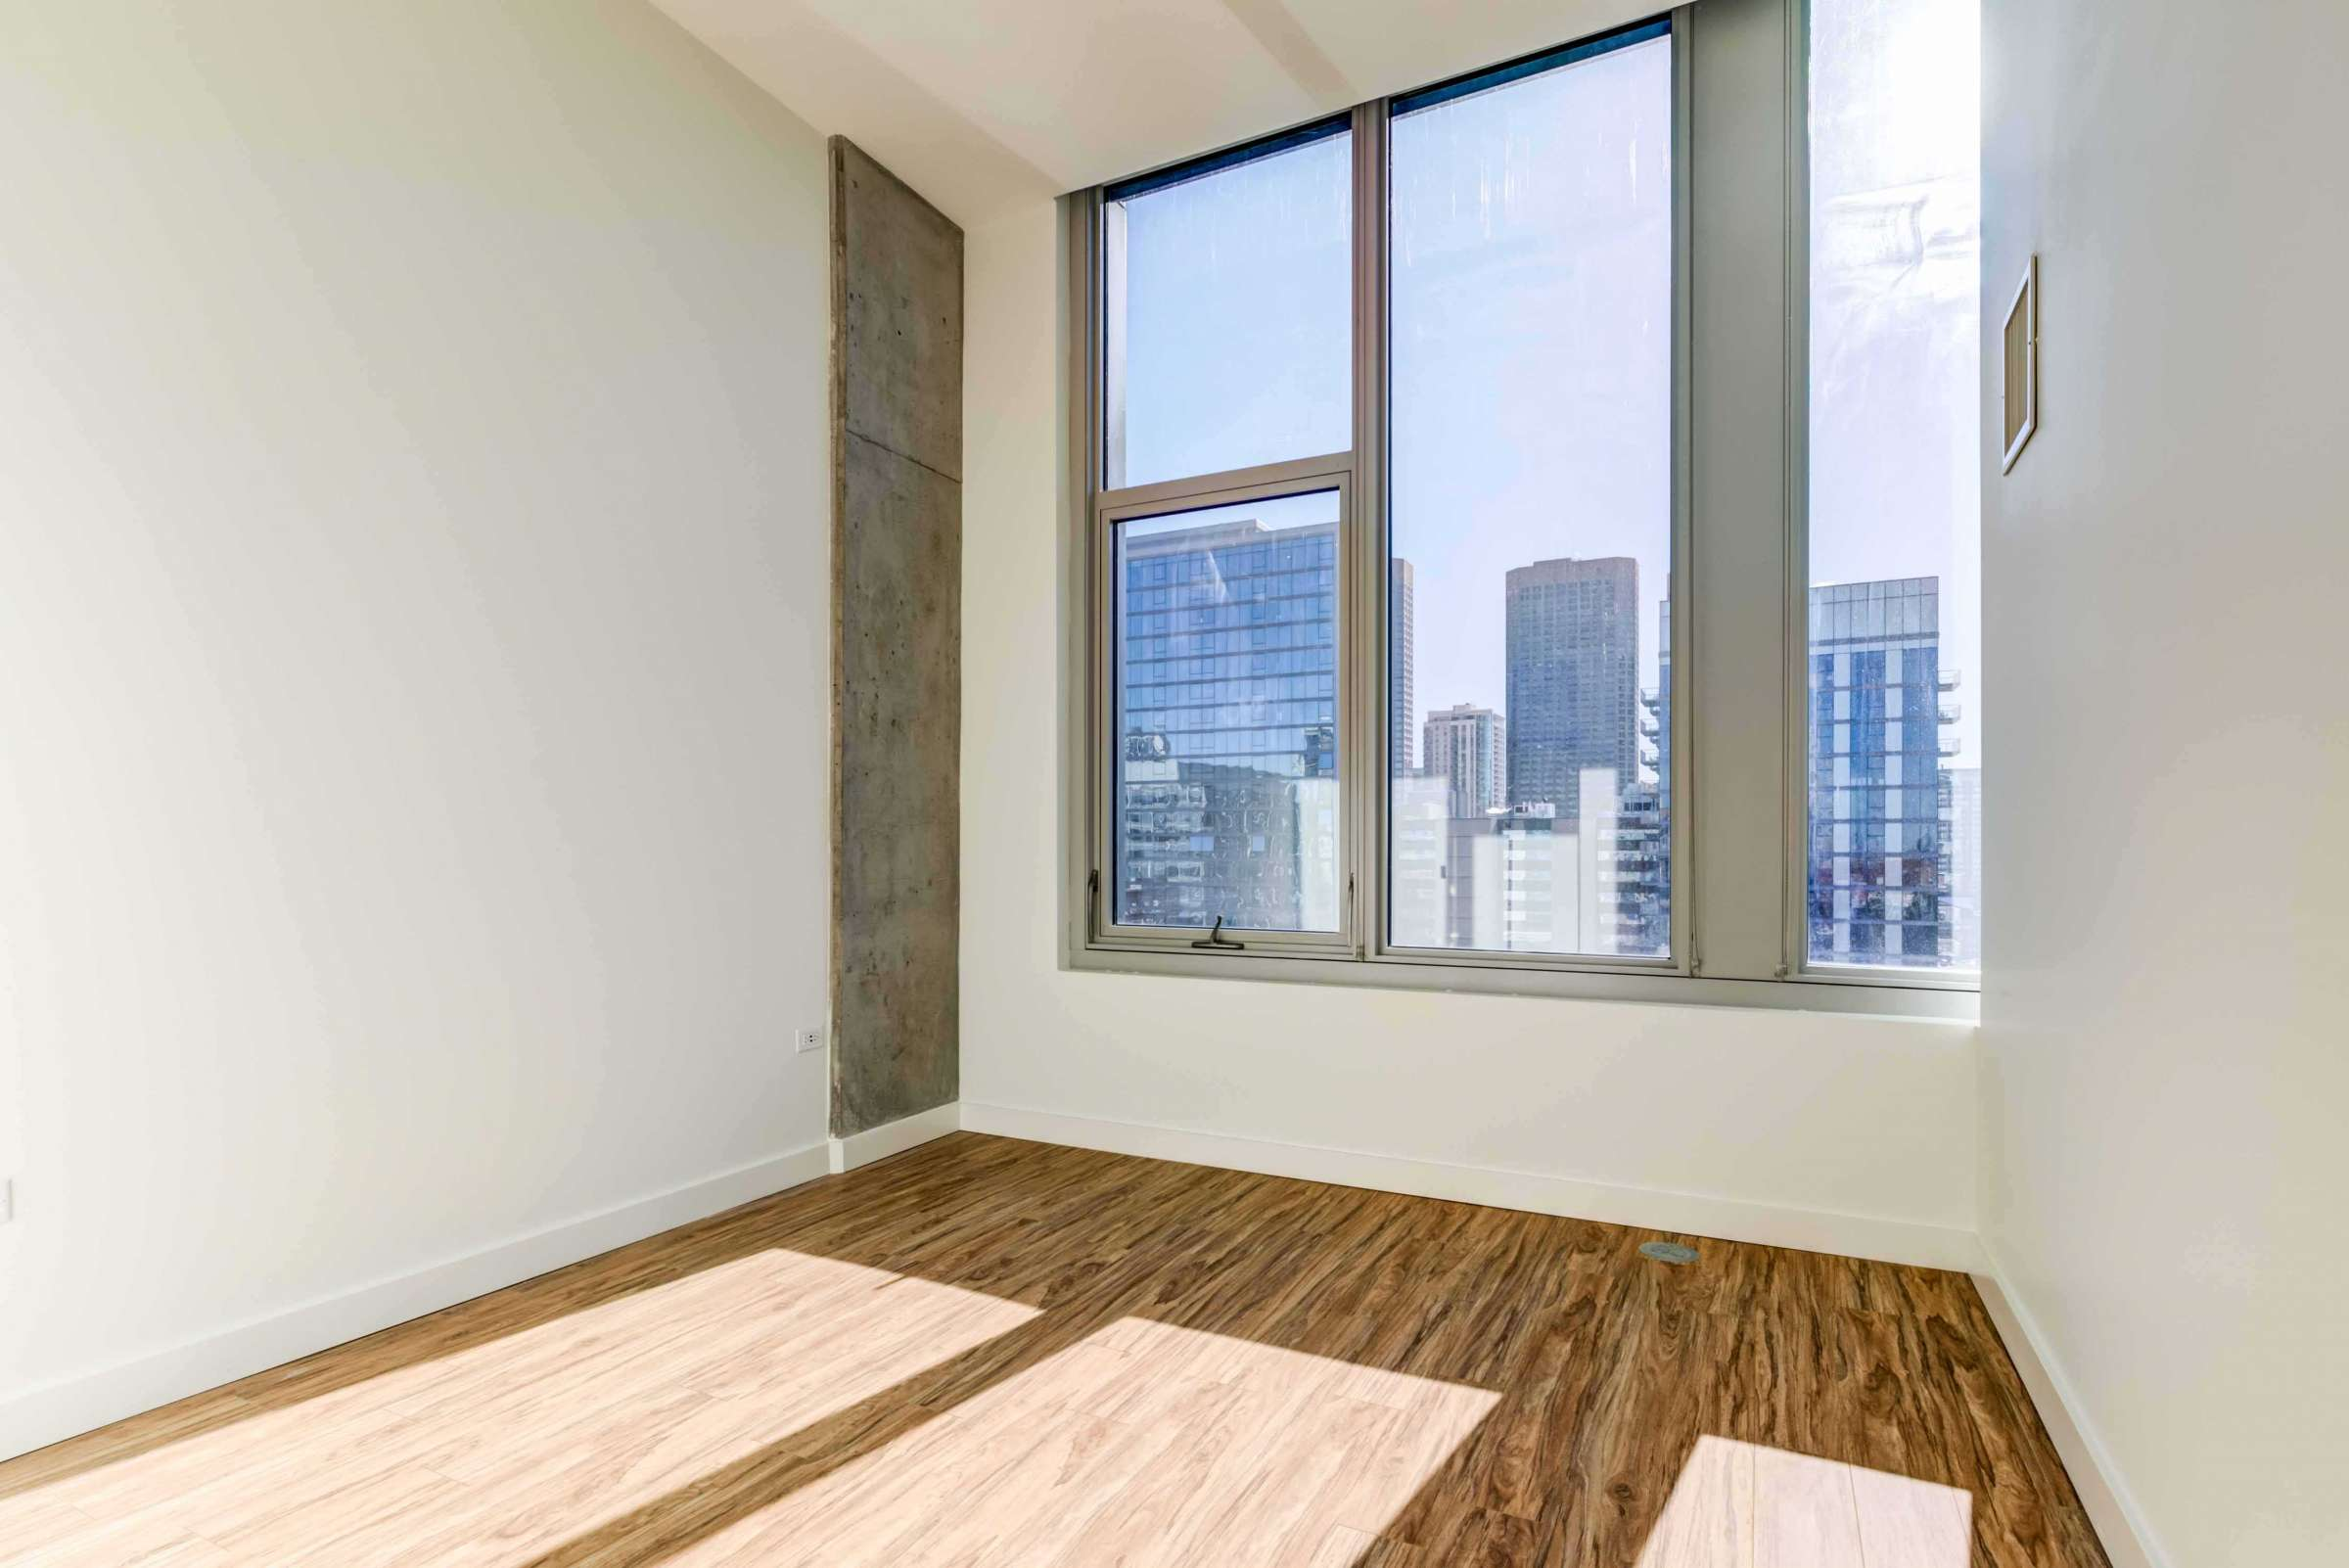 Luxury West Loop Apartments EMME - Large Windows and Chicago City Skyline Views